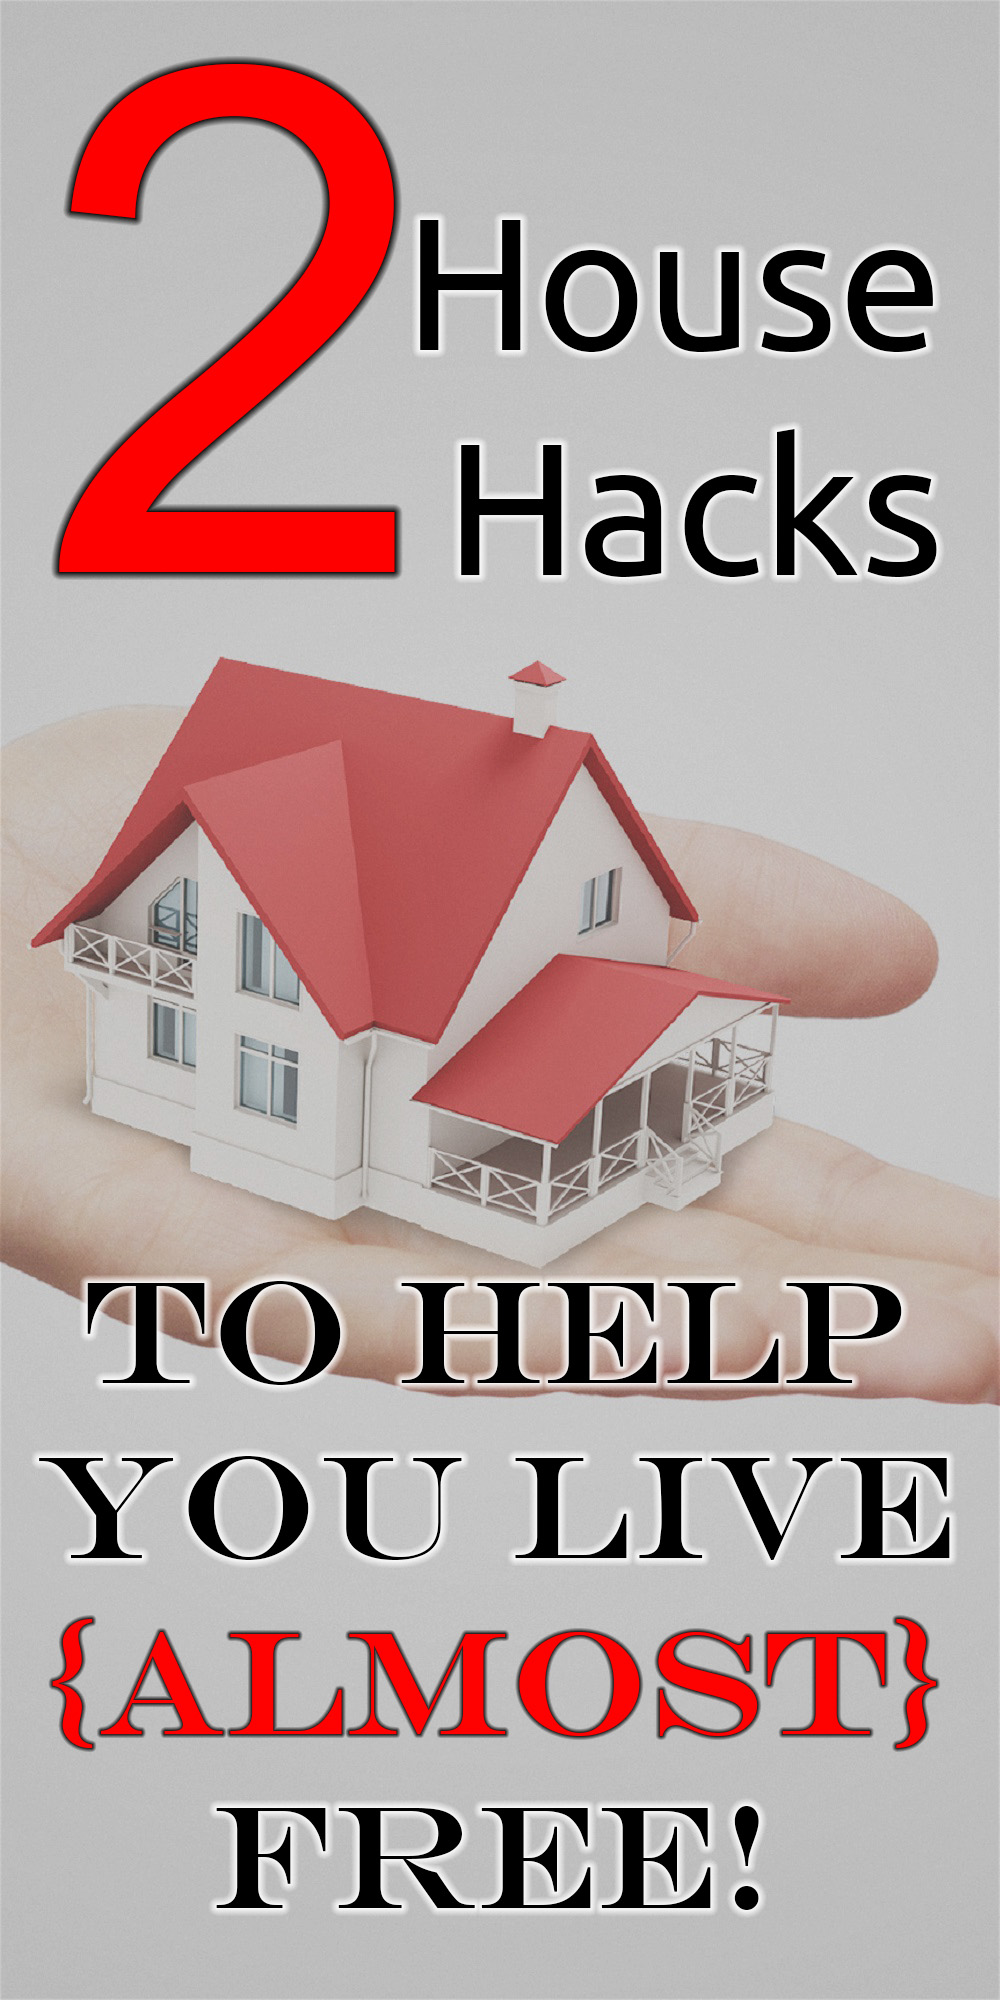 Big changes, like New Year's resolutions, are hard to make and failing at them hurts big. That's why after reading this, you'll go all in on small changes, especially, small financial changes. #RealEstate #HouseHacks #